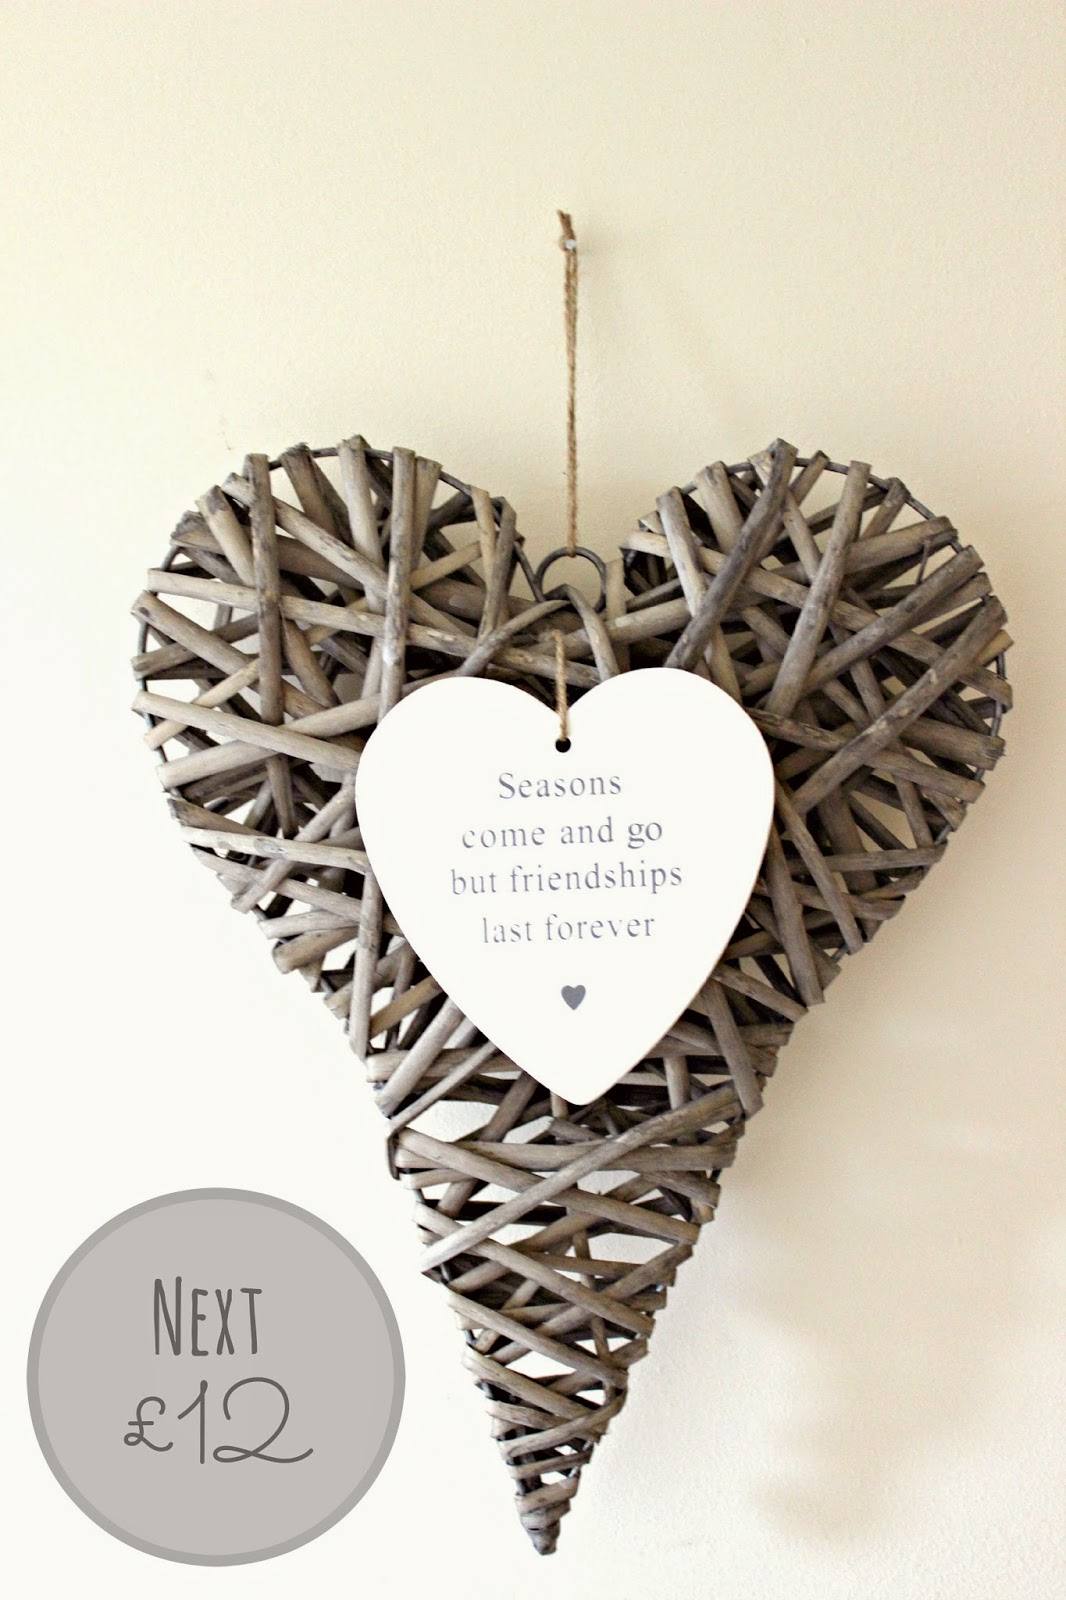 wicker heart from next